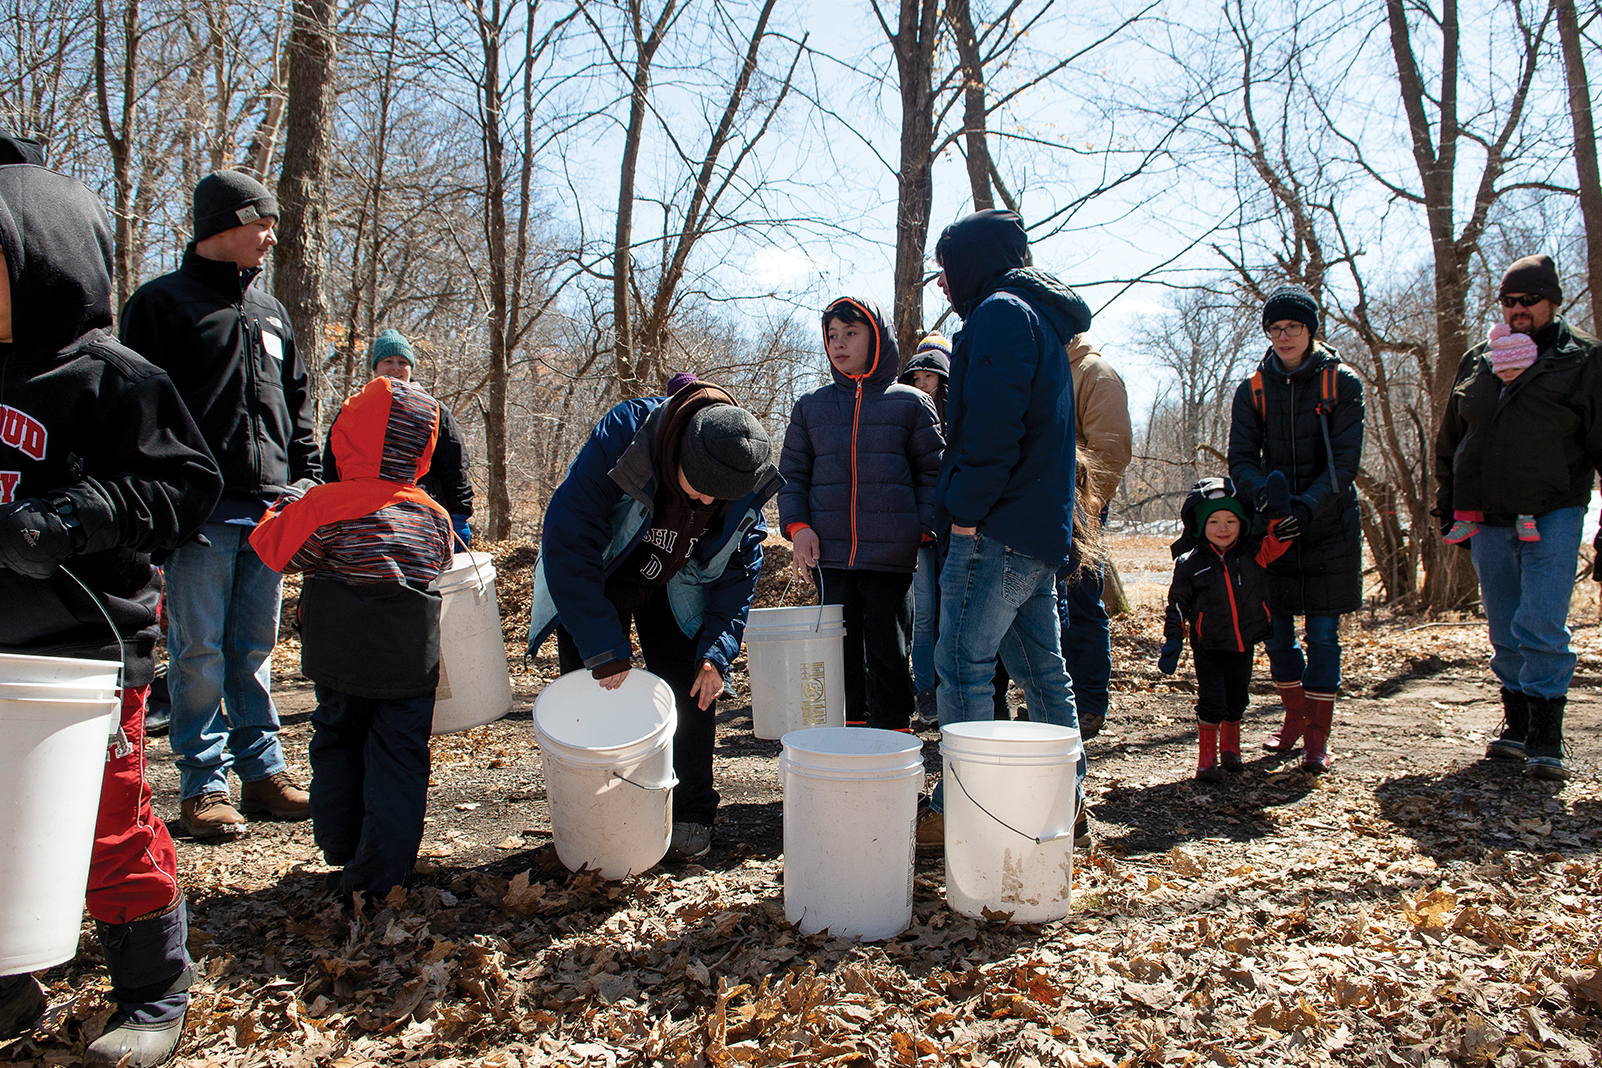 St. John's University hosts the annual maple syrup festival, this year on April 4